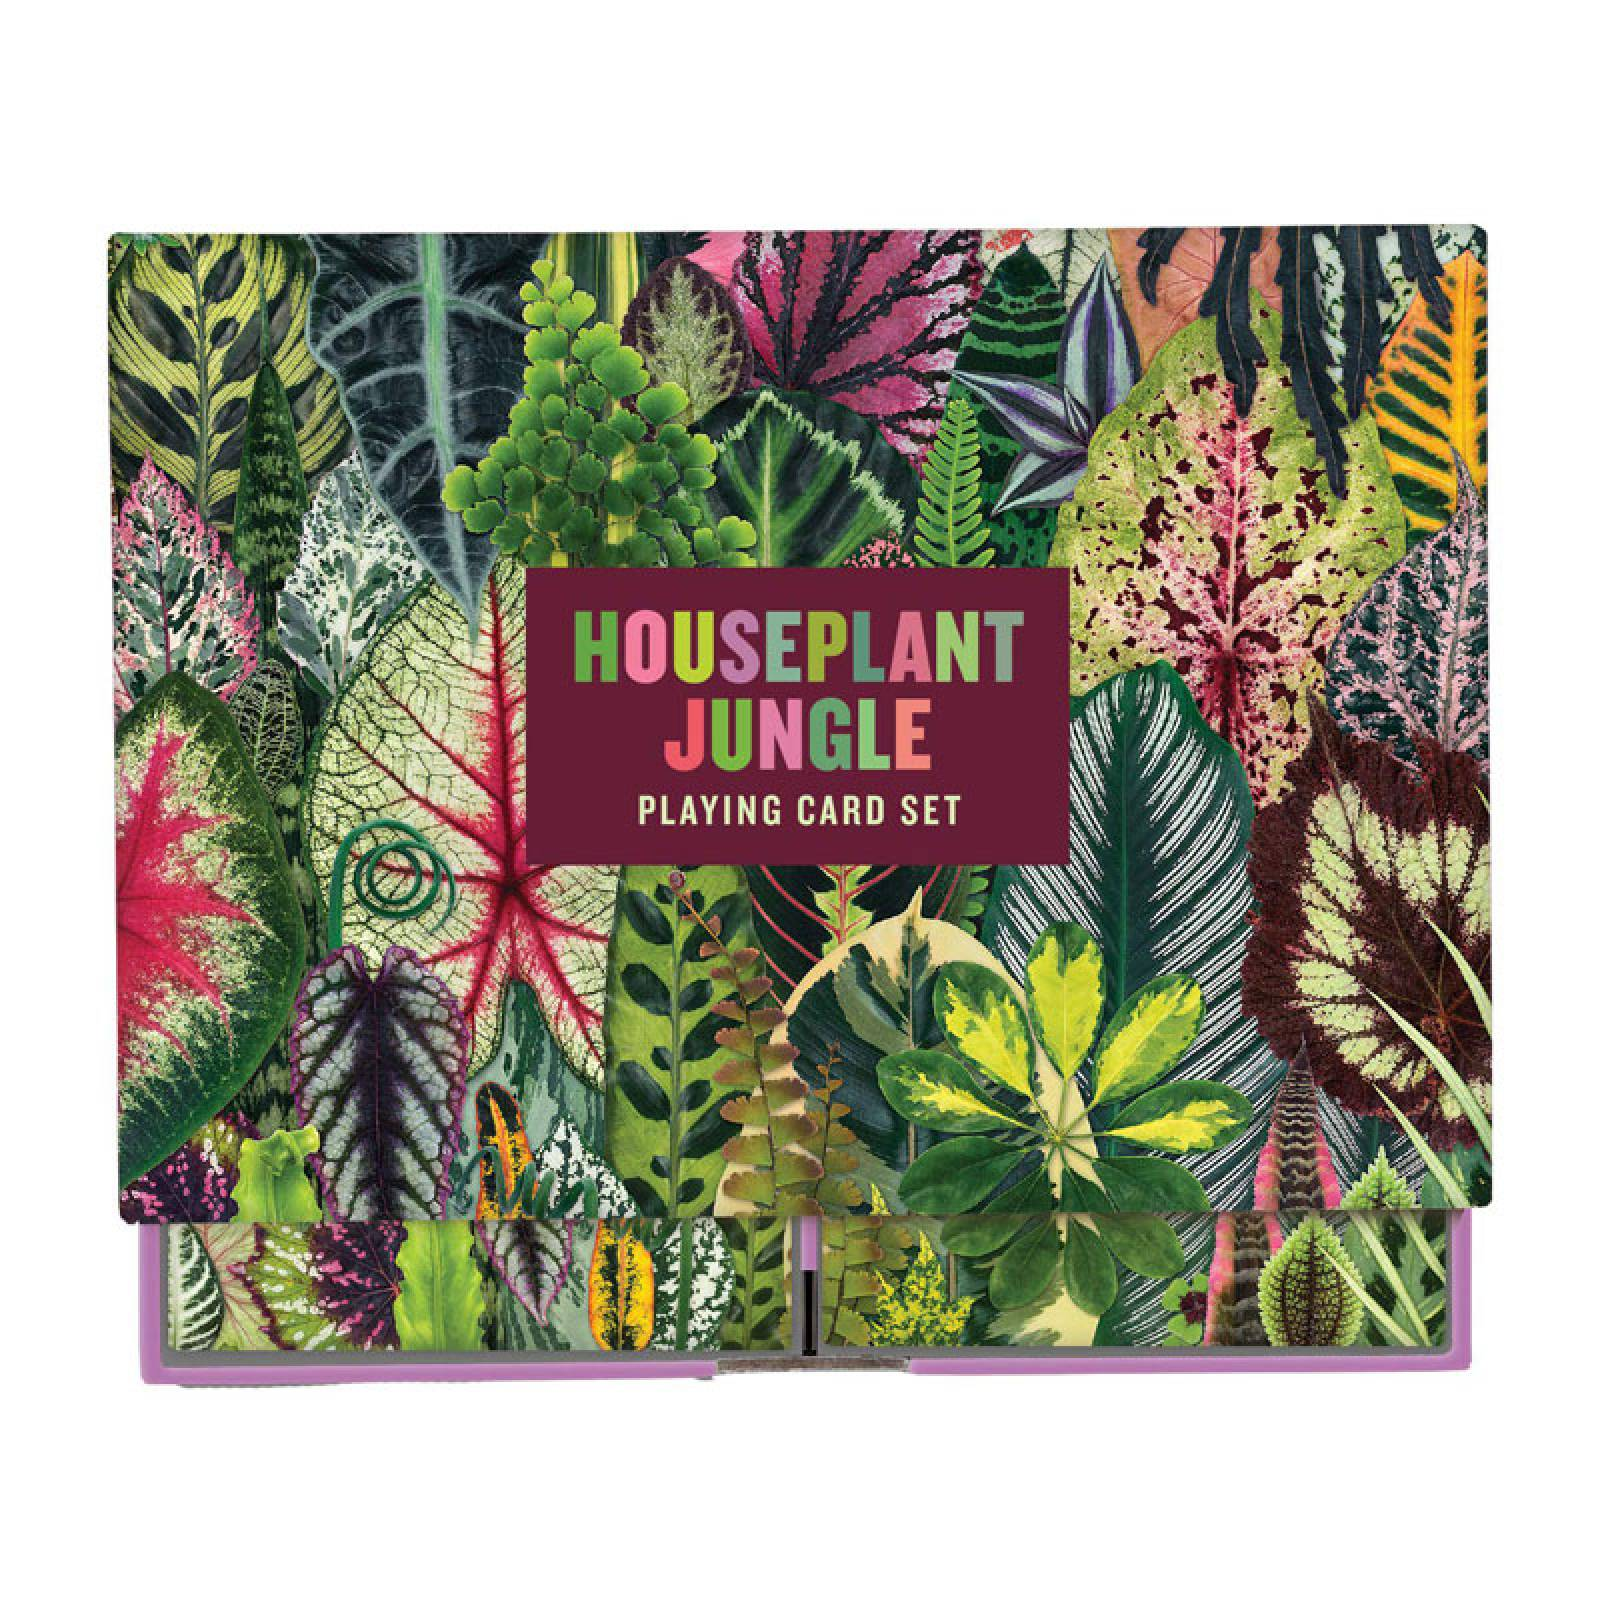 Houseplant Jungle Playing Card Set